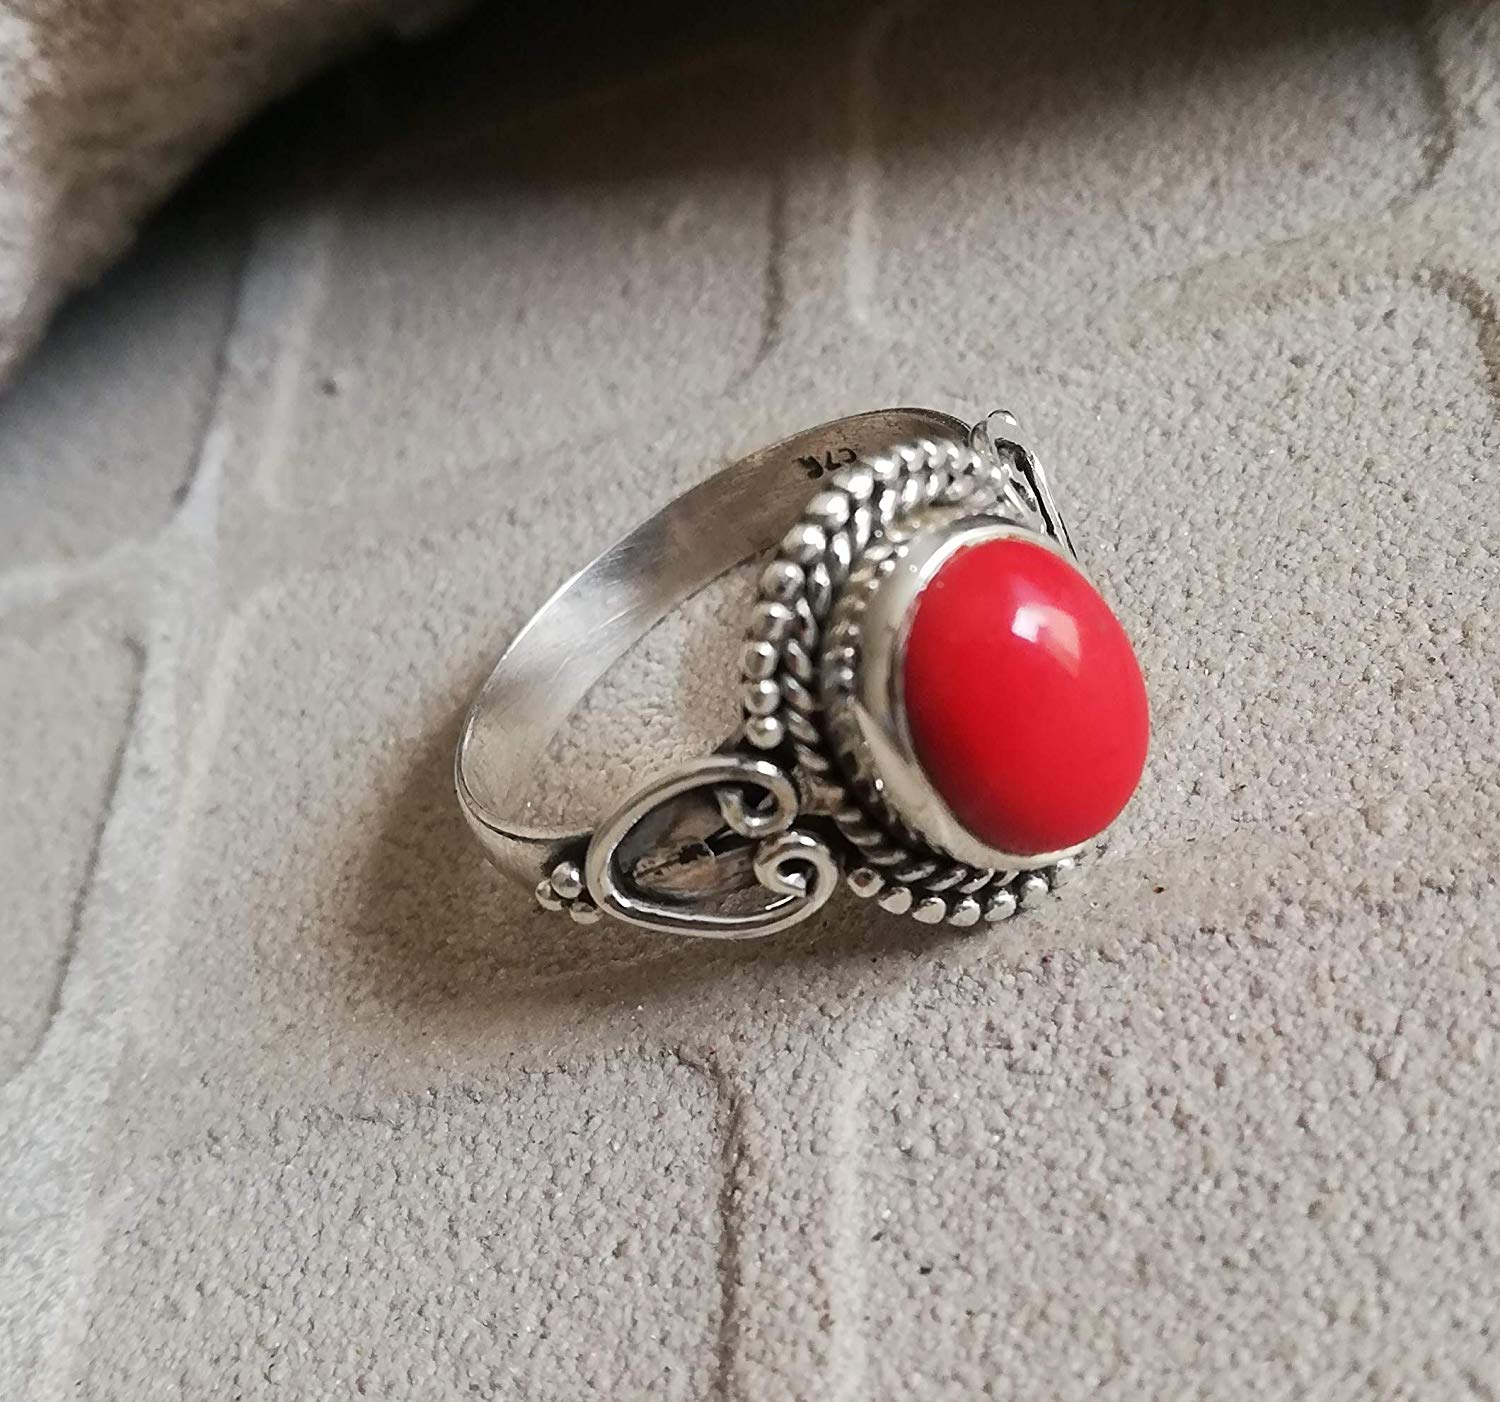 Coral Ring 925 Sterling Silver Personalised Ring Mermaid Silver Ring Beach Jewelry Vintage Ring Ethnic Ring Cabochon Ring Love Ring Ultimate Ring Stylish Ring Original Handmade Boho Chic US All Size